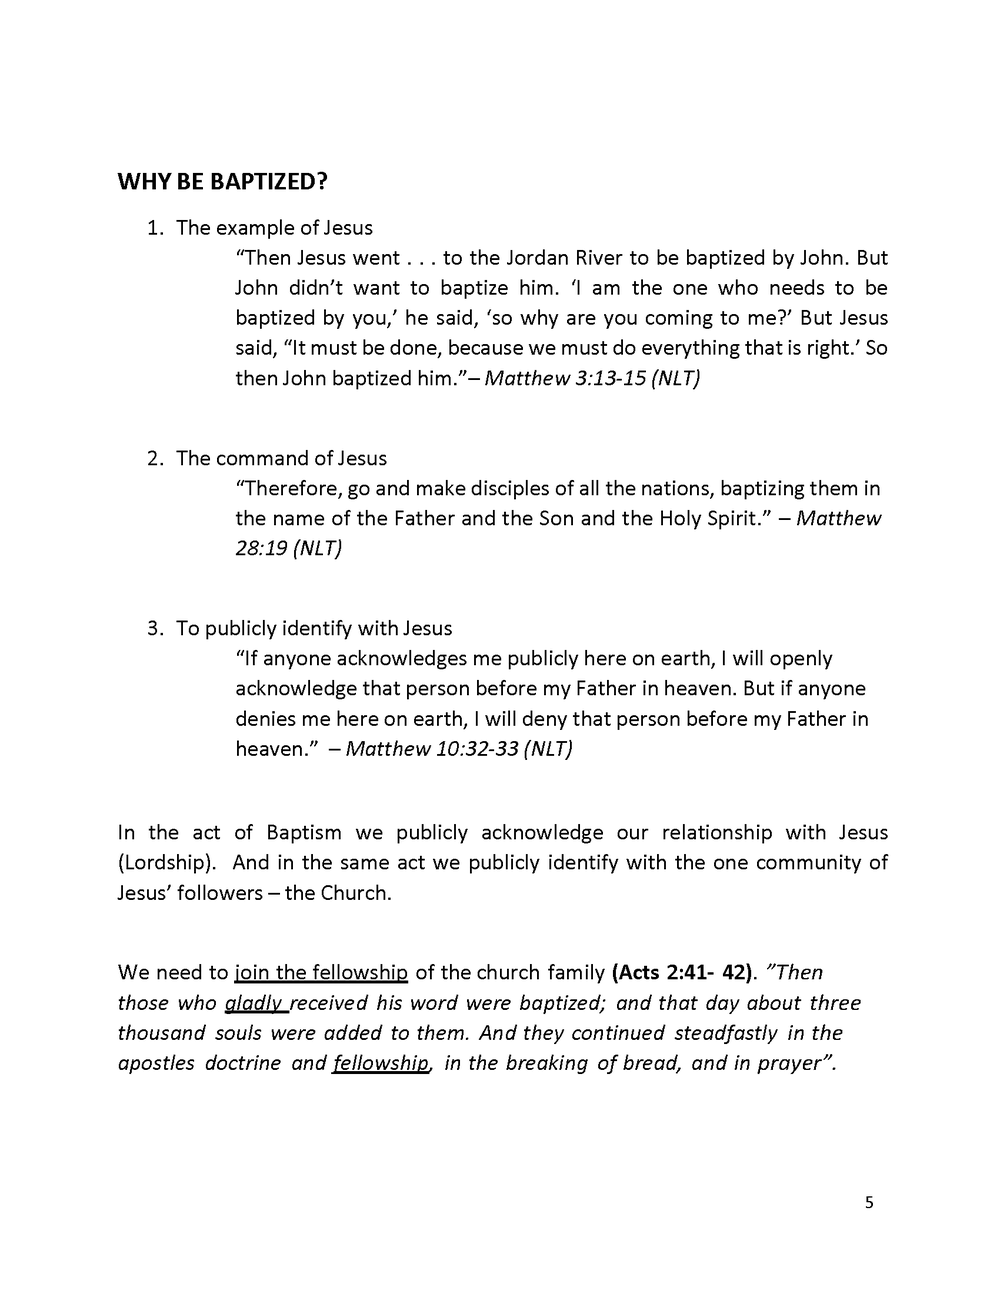 Baptism - Your Expression of Faith 10-28-18_Page_05.png